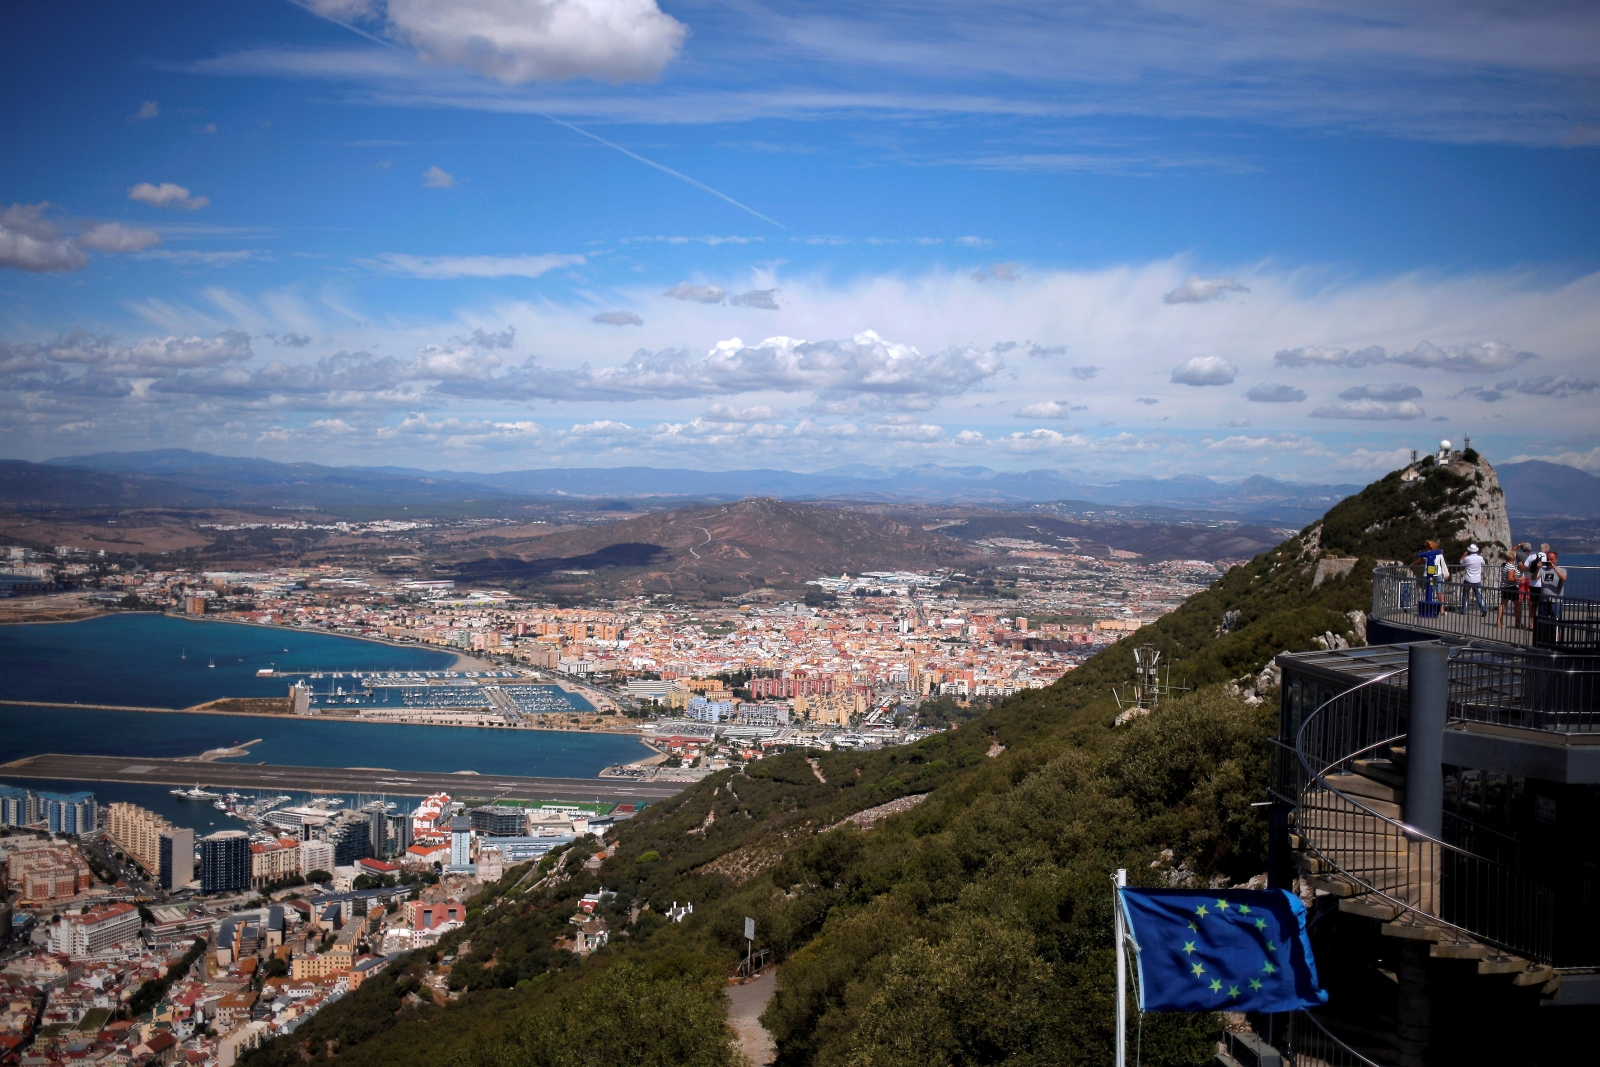 Spain tells Britain to calm down over Gibraltar